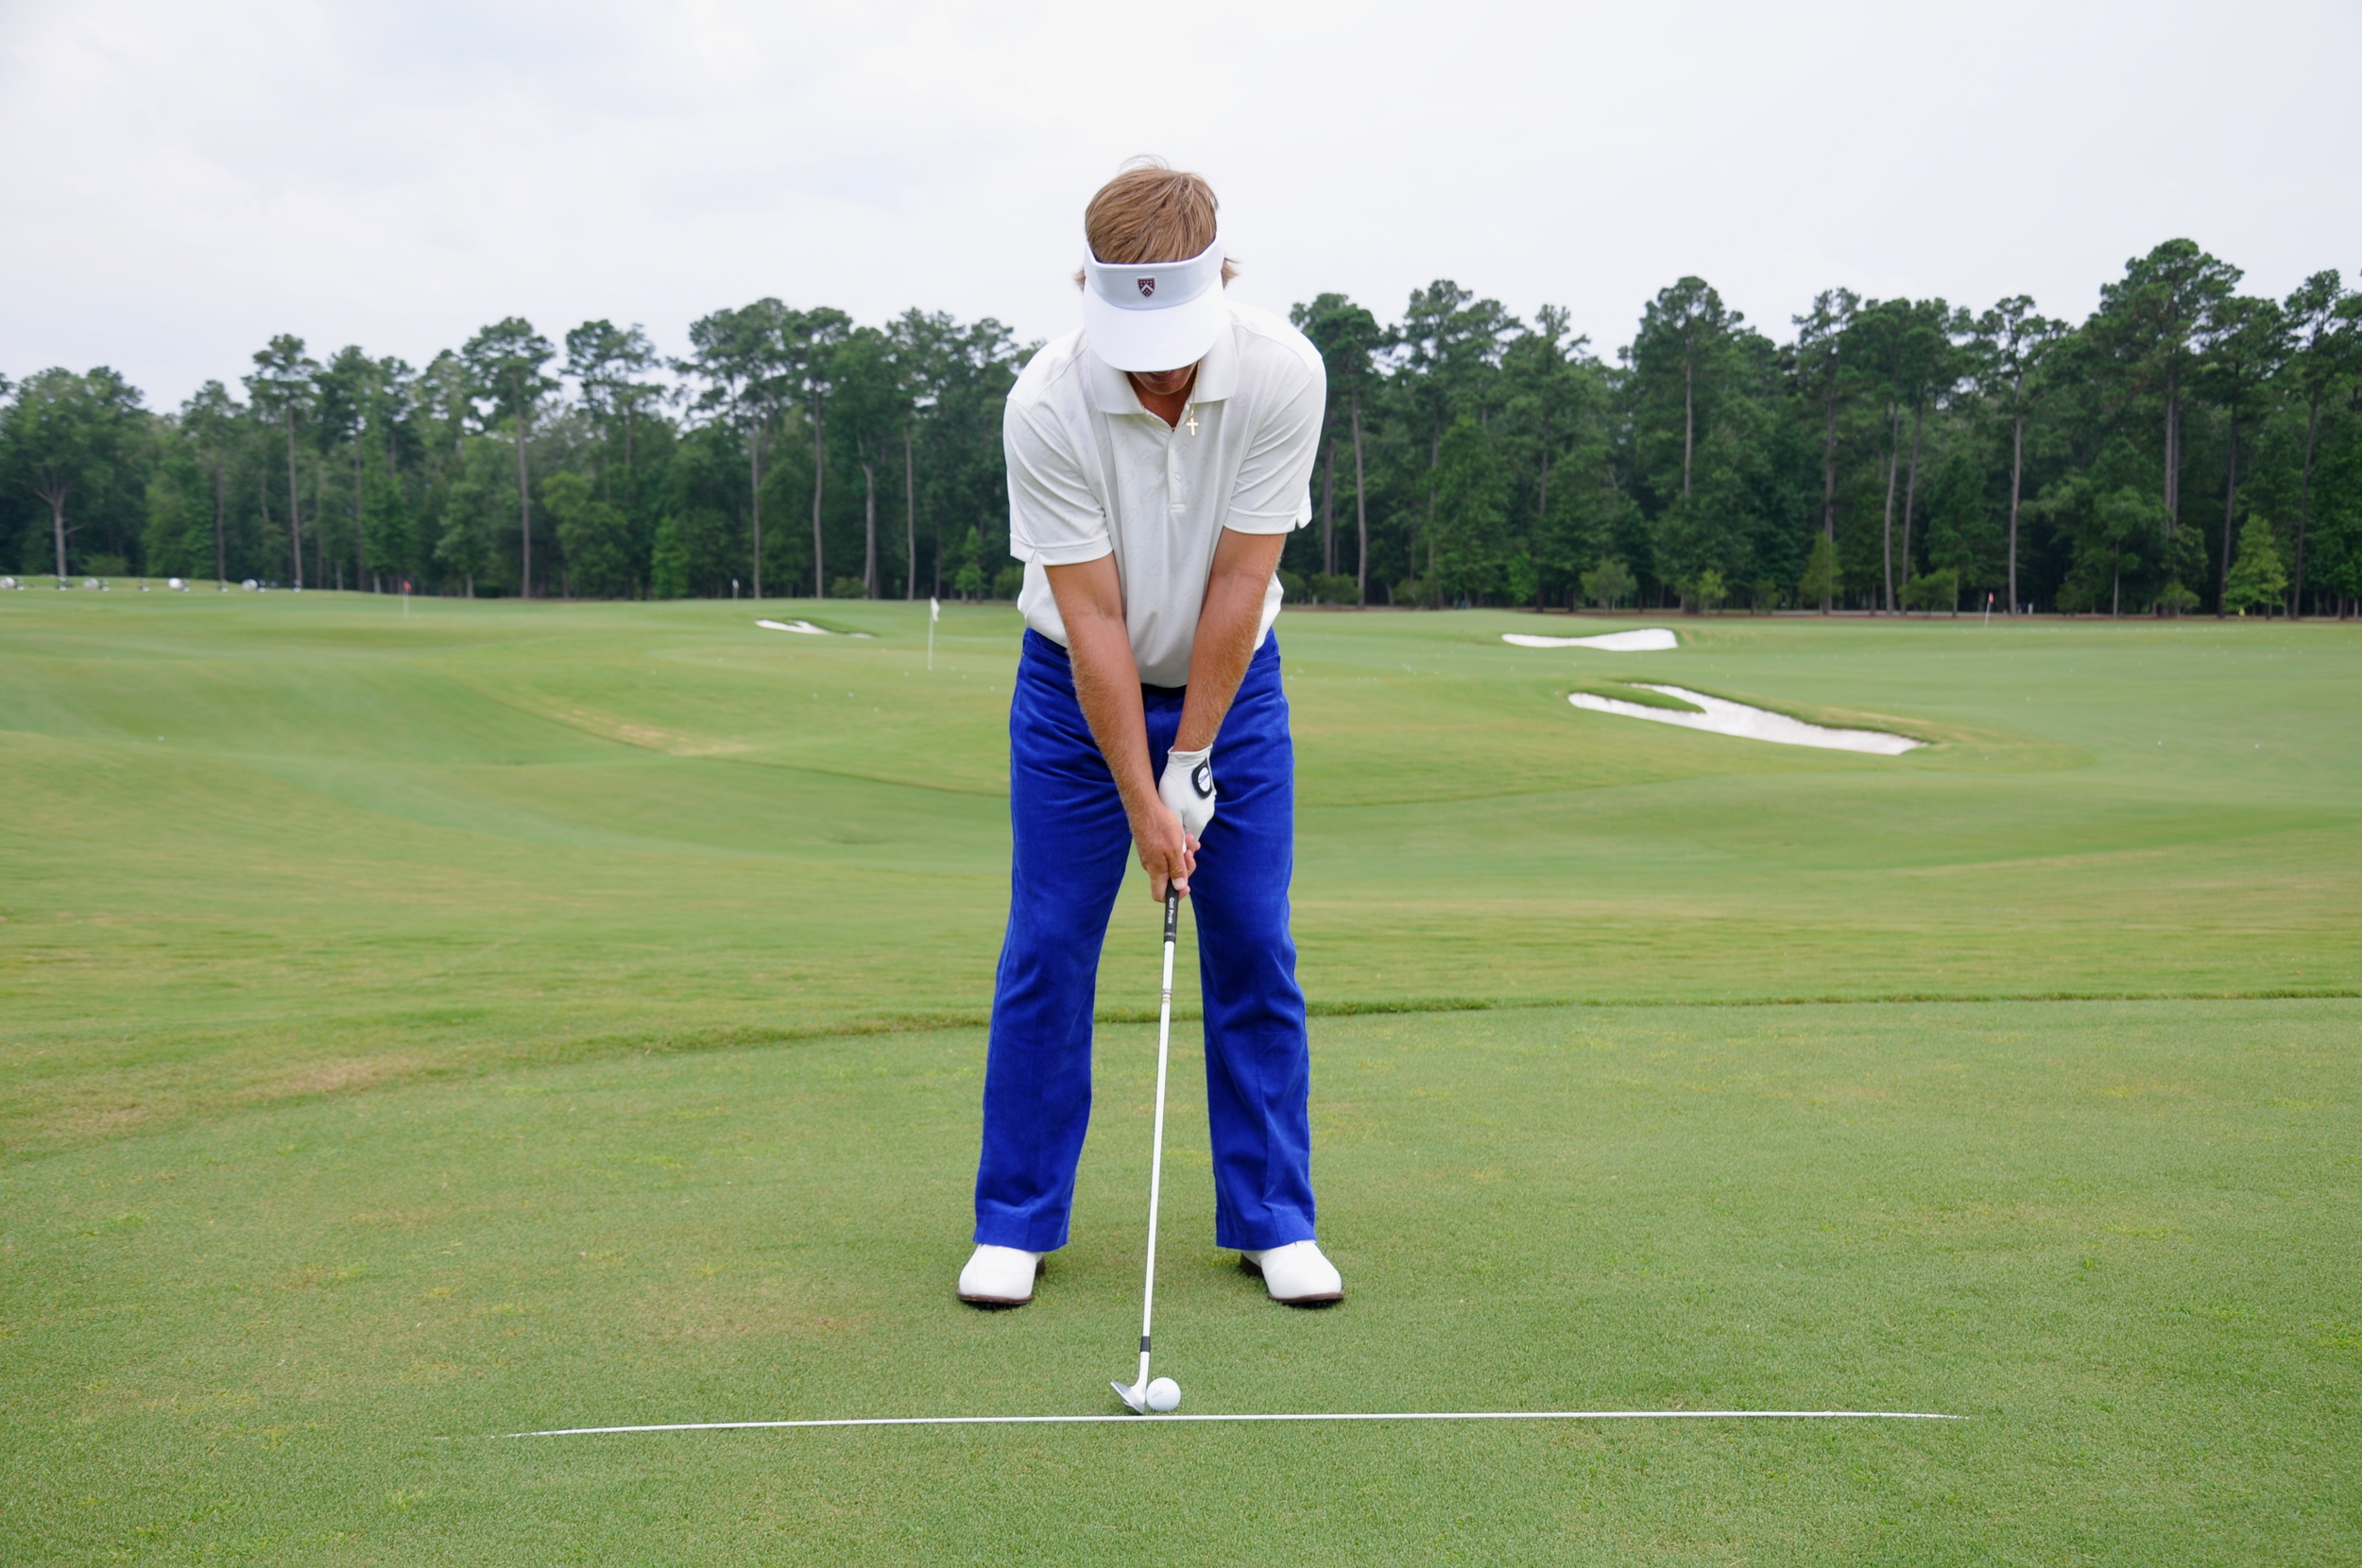 Ball Position with a Short Iron